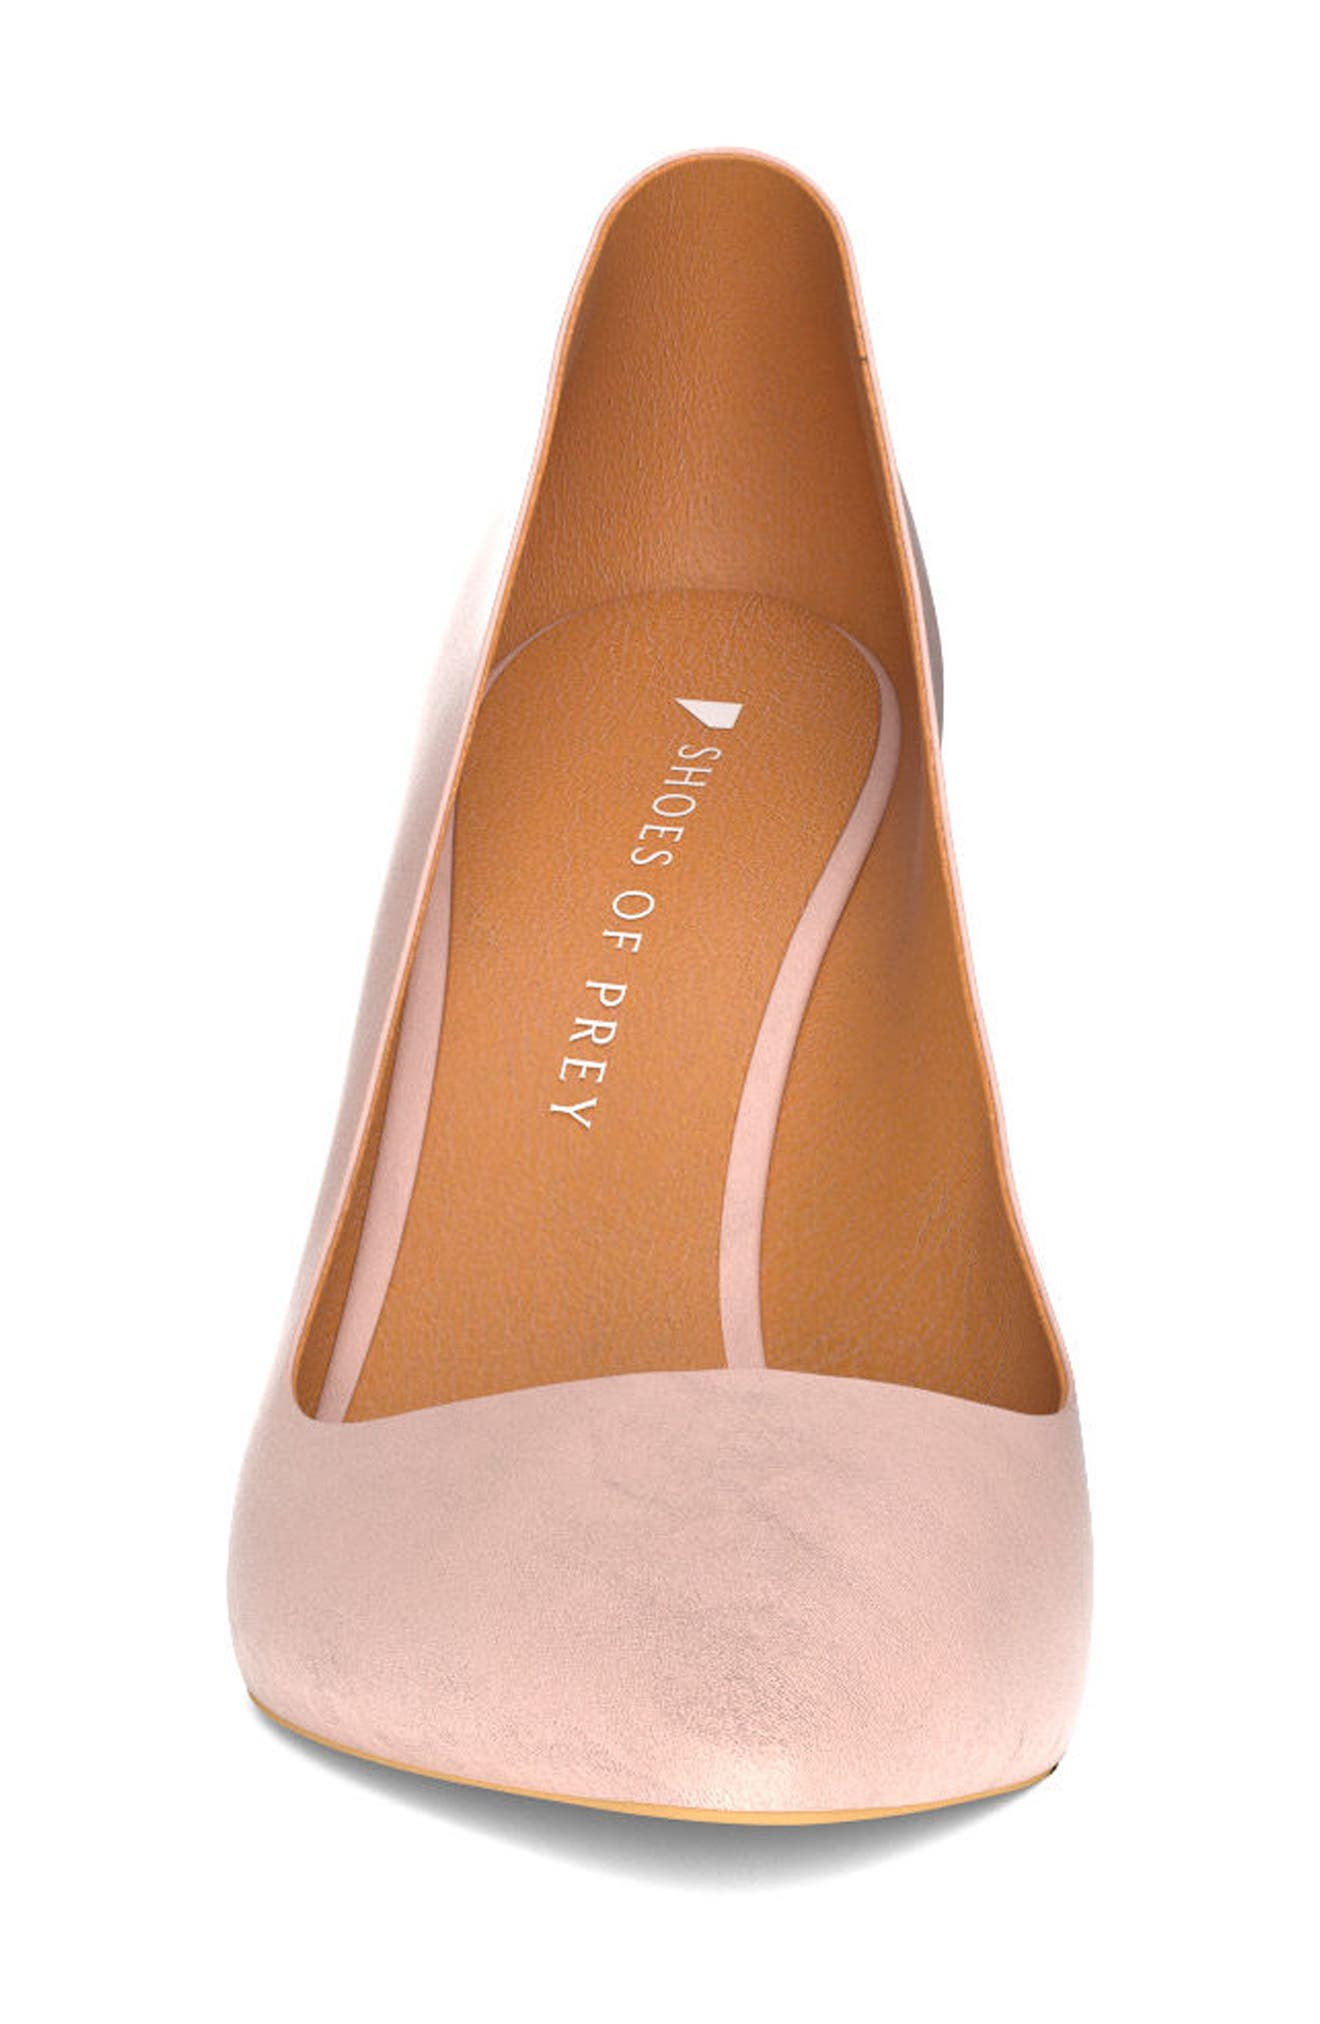 Pointy Toe Pump,                             Alternate thumbnail 4, color,                             Blush Nude Leather